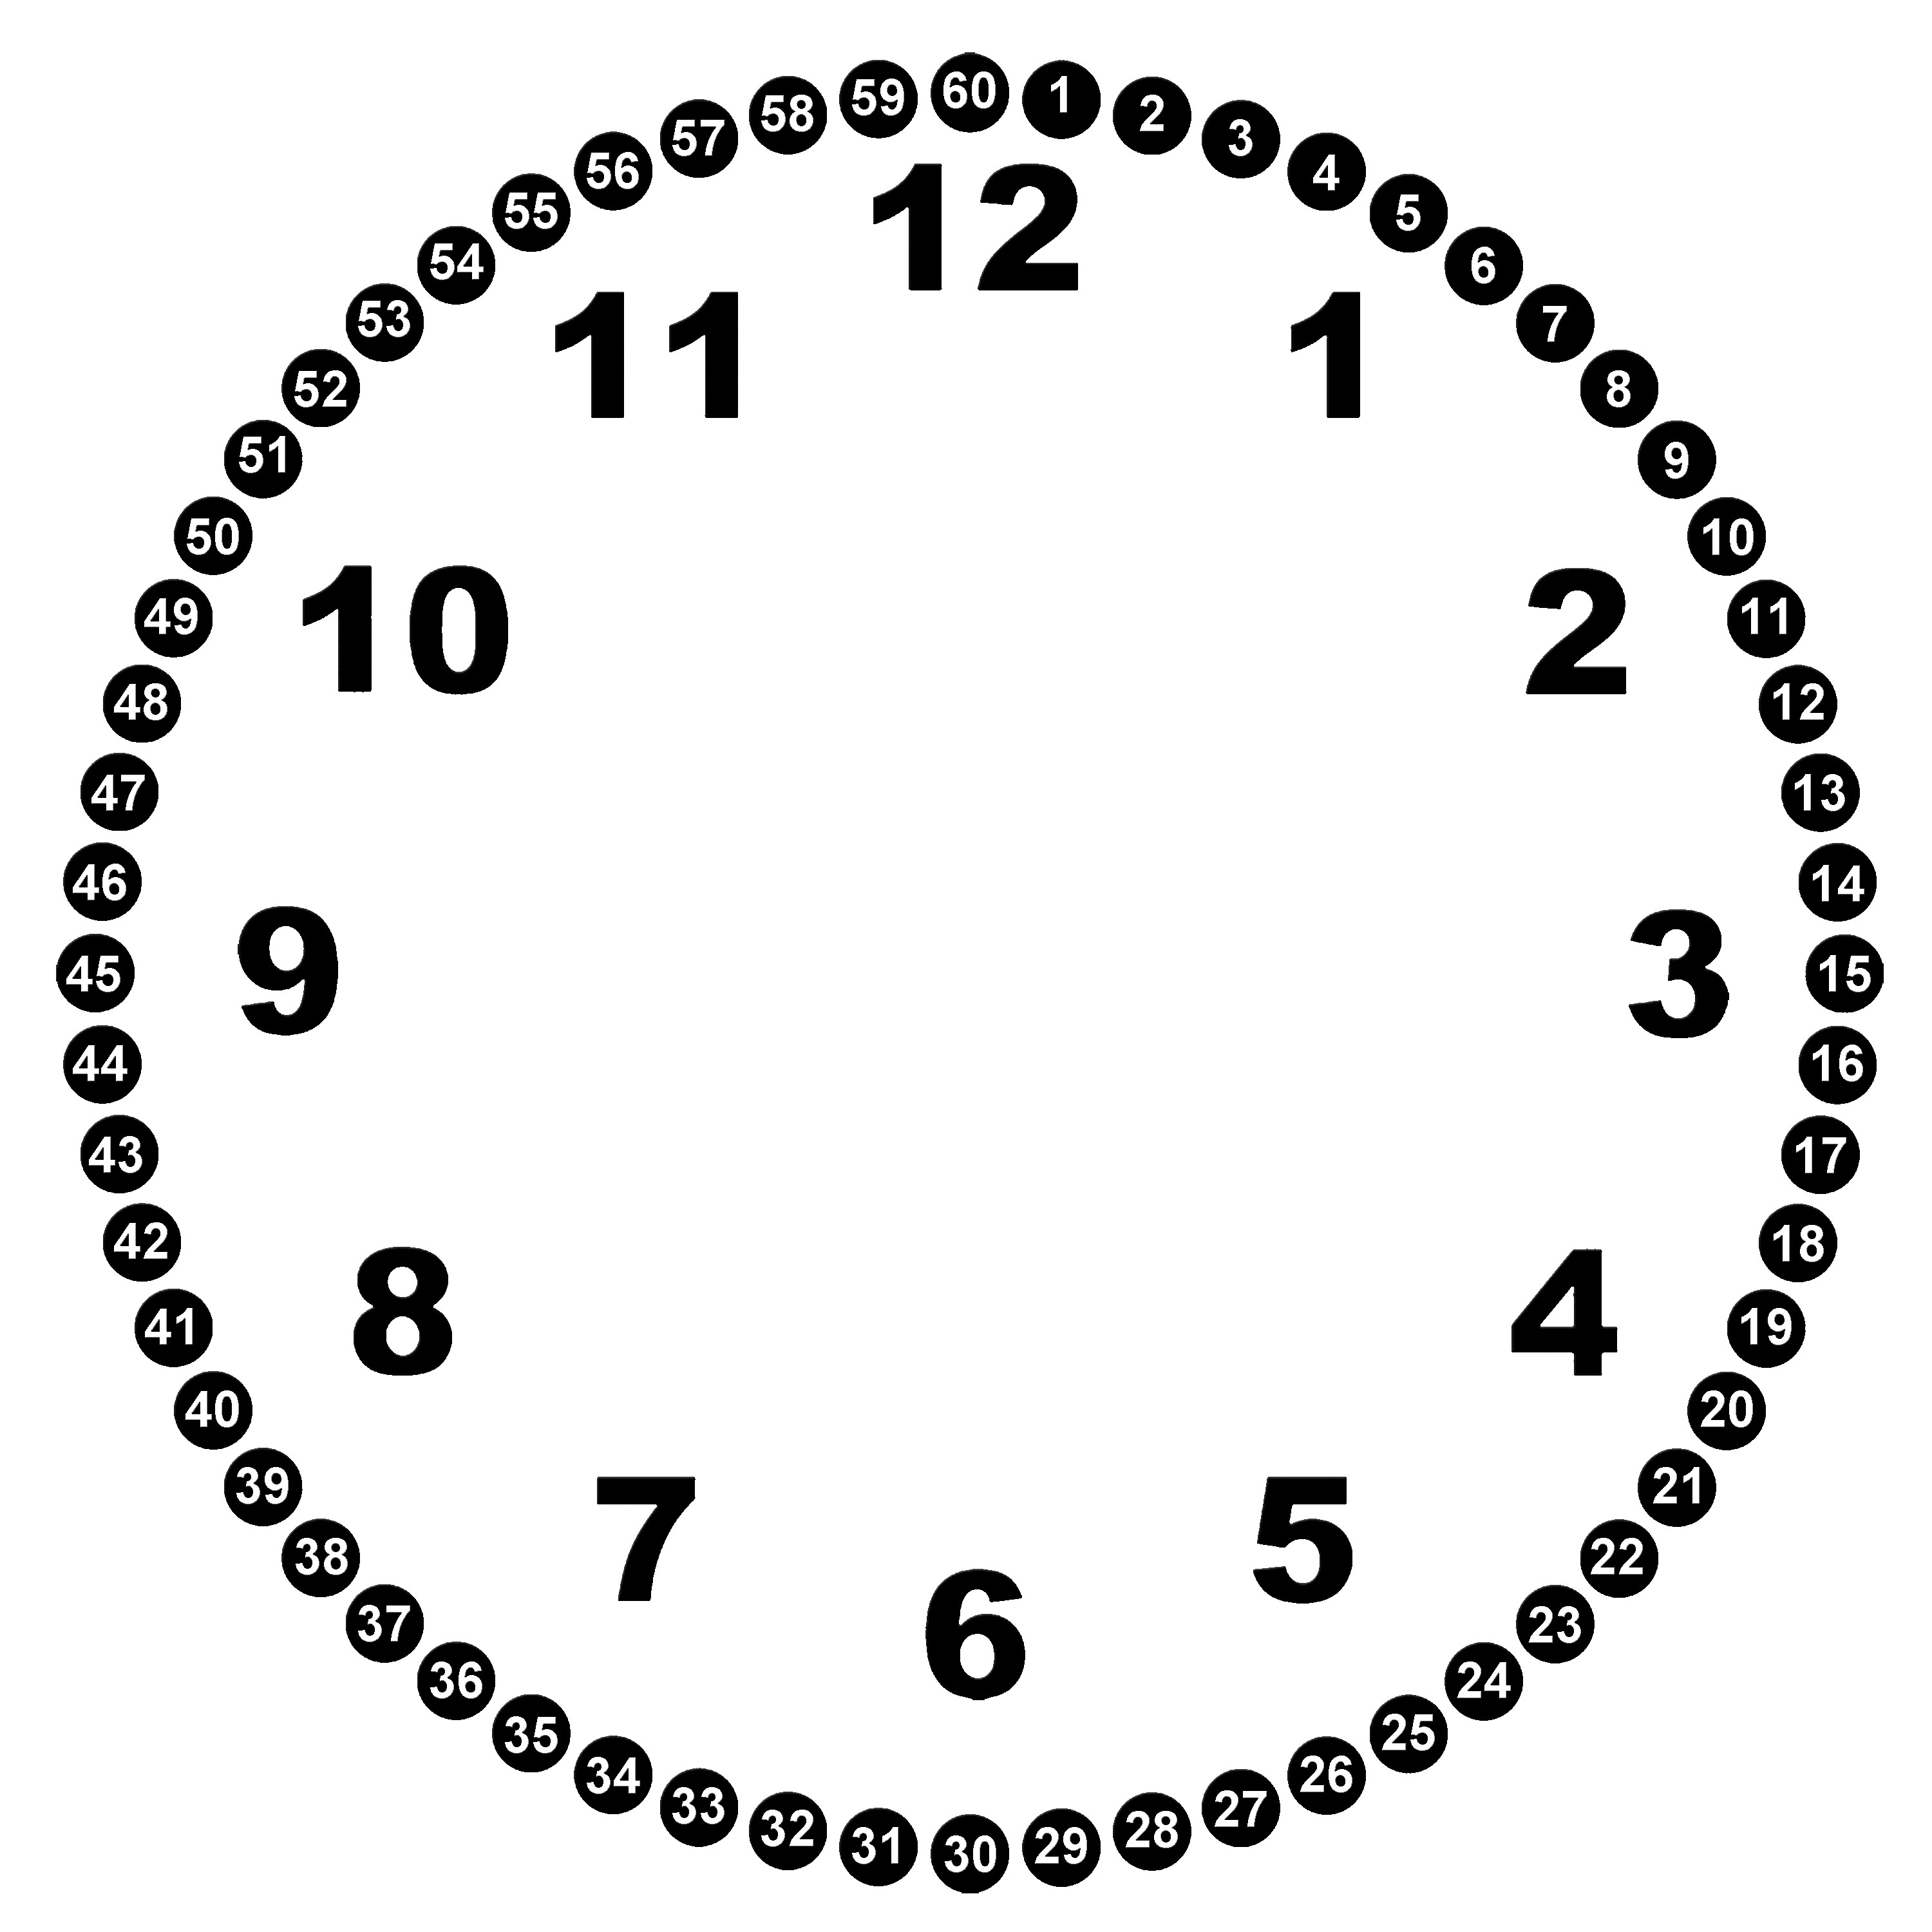 Clock face template clipart jpg download Free Blank Clock Face Printable, Download Free Clip Art, Free Clip ... jpg download